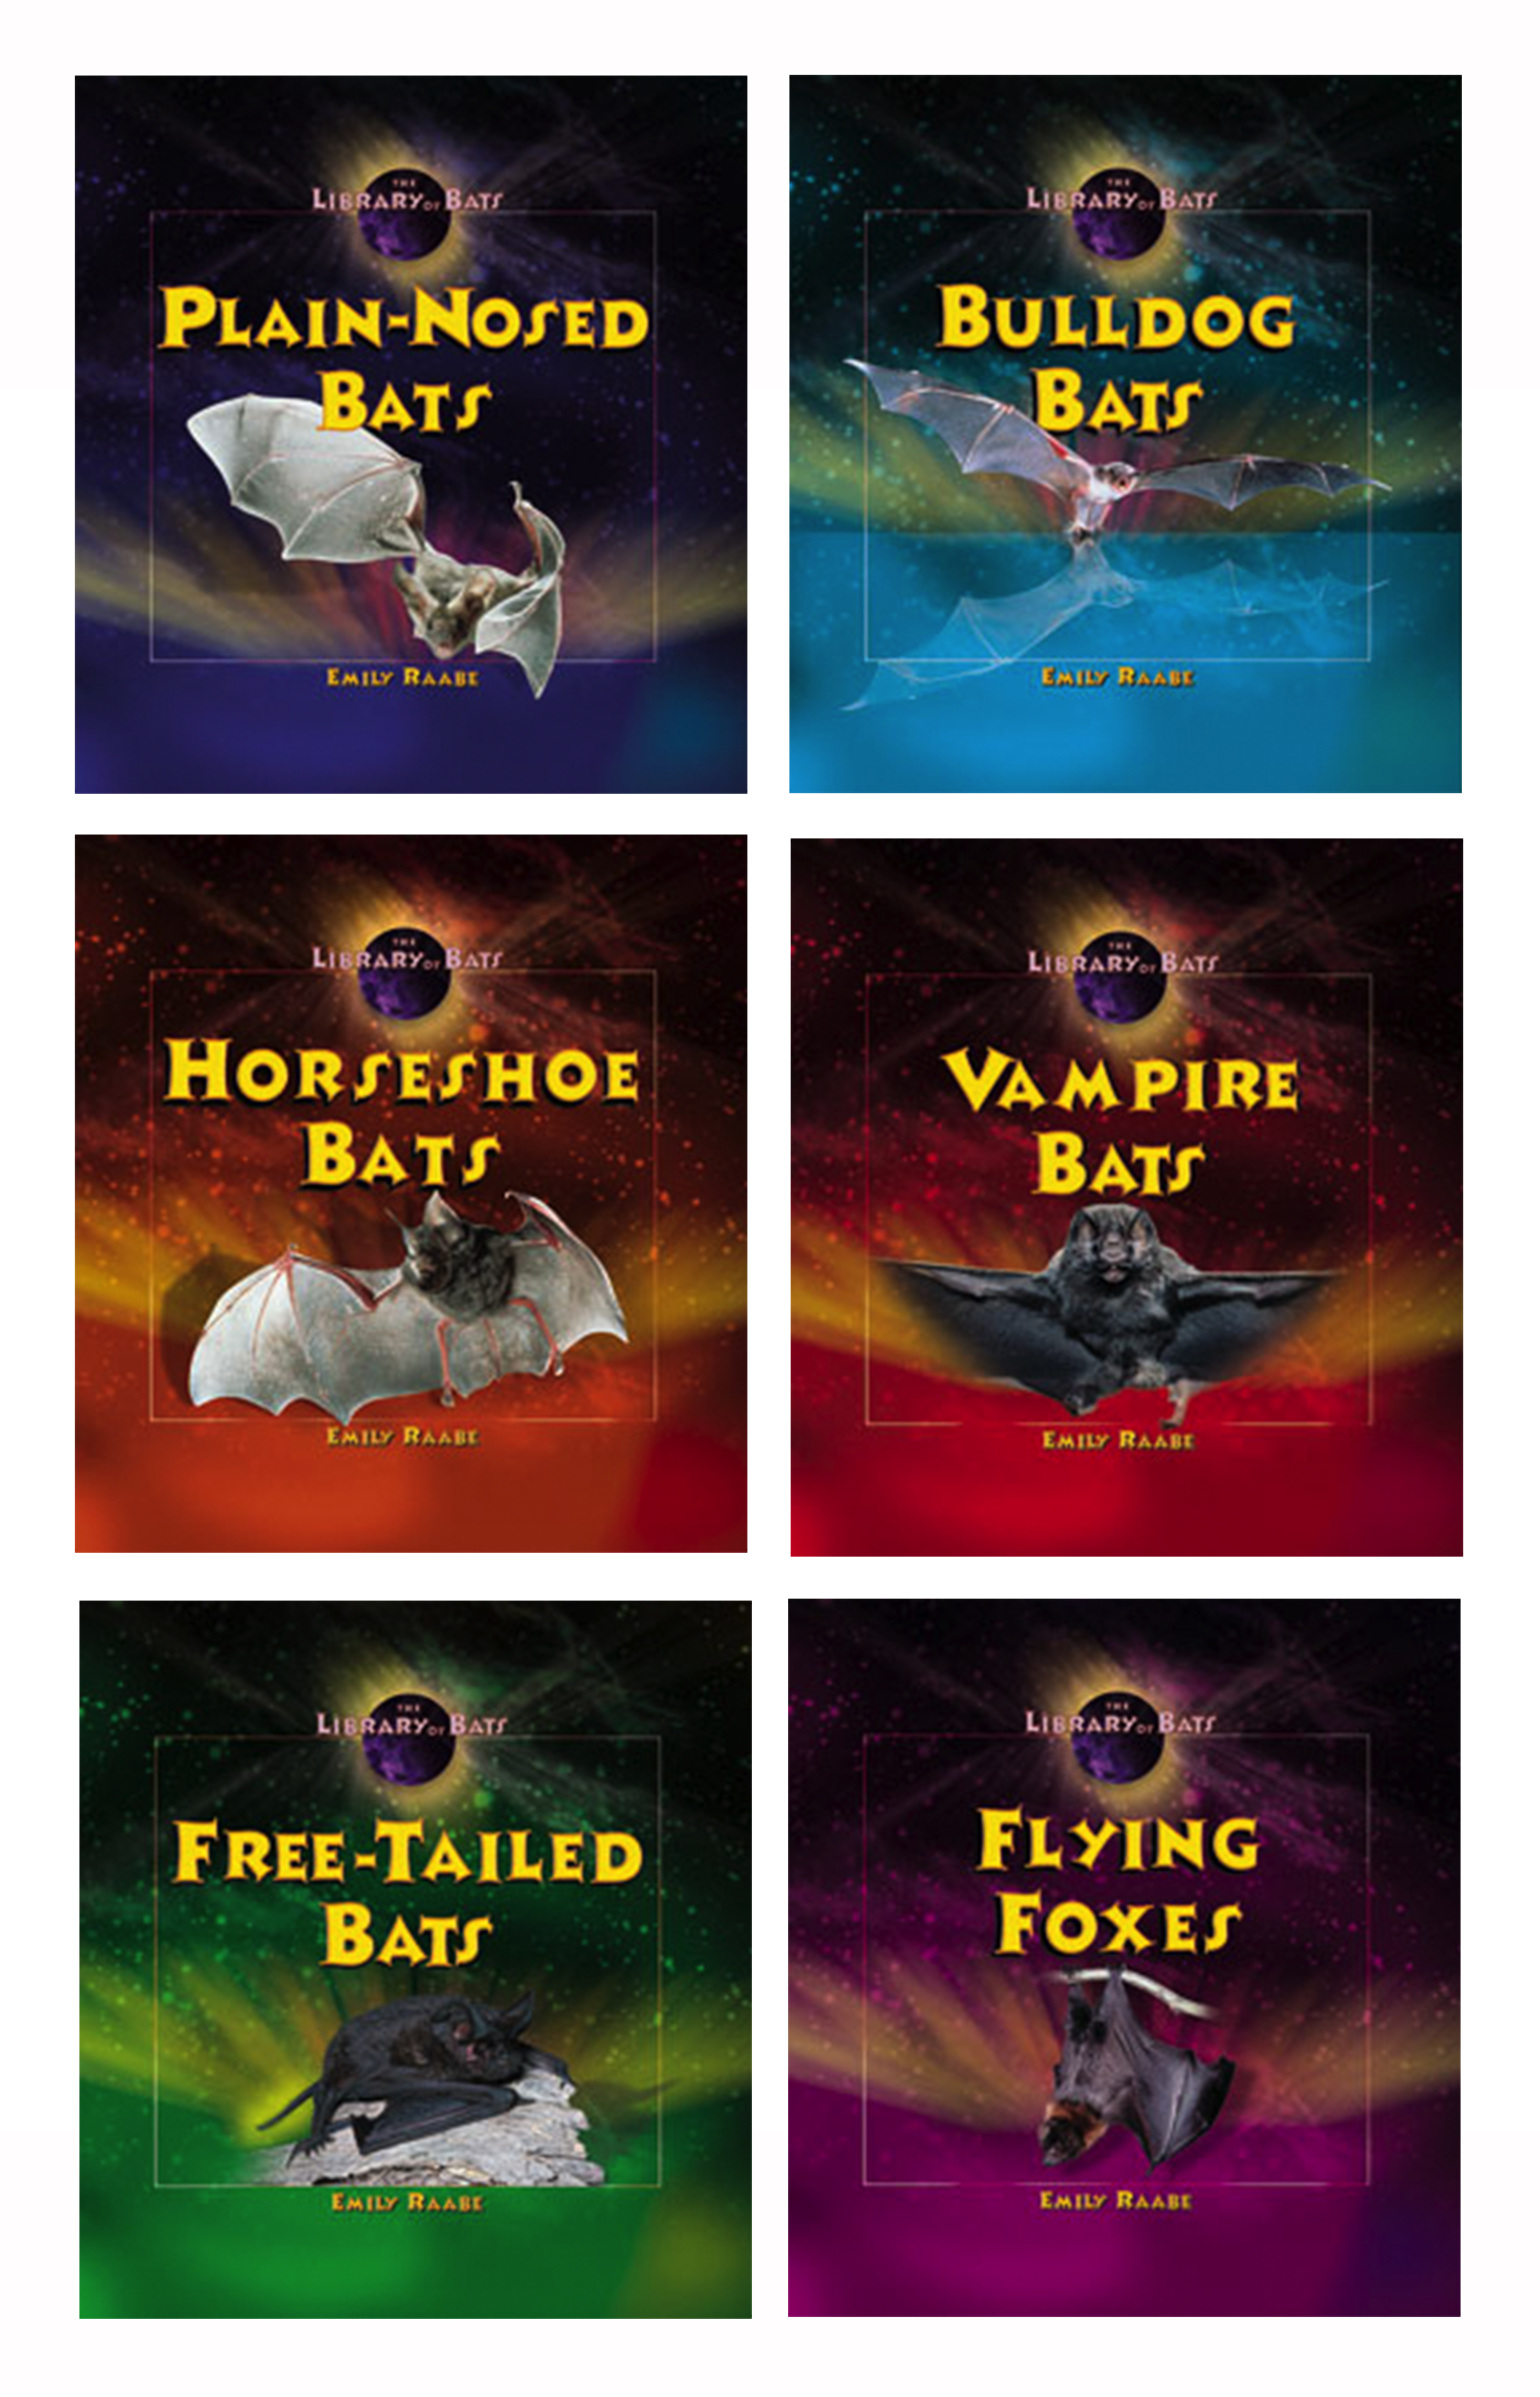 I art directed and designed this 6-book series on bats featuring the photography of bat expert Merlin Tuttle.